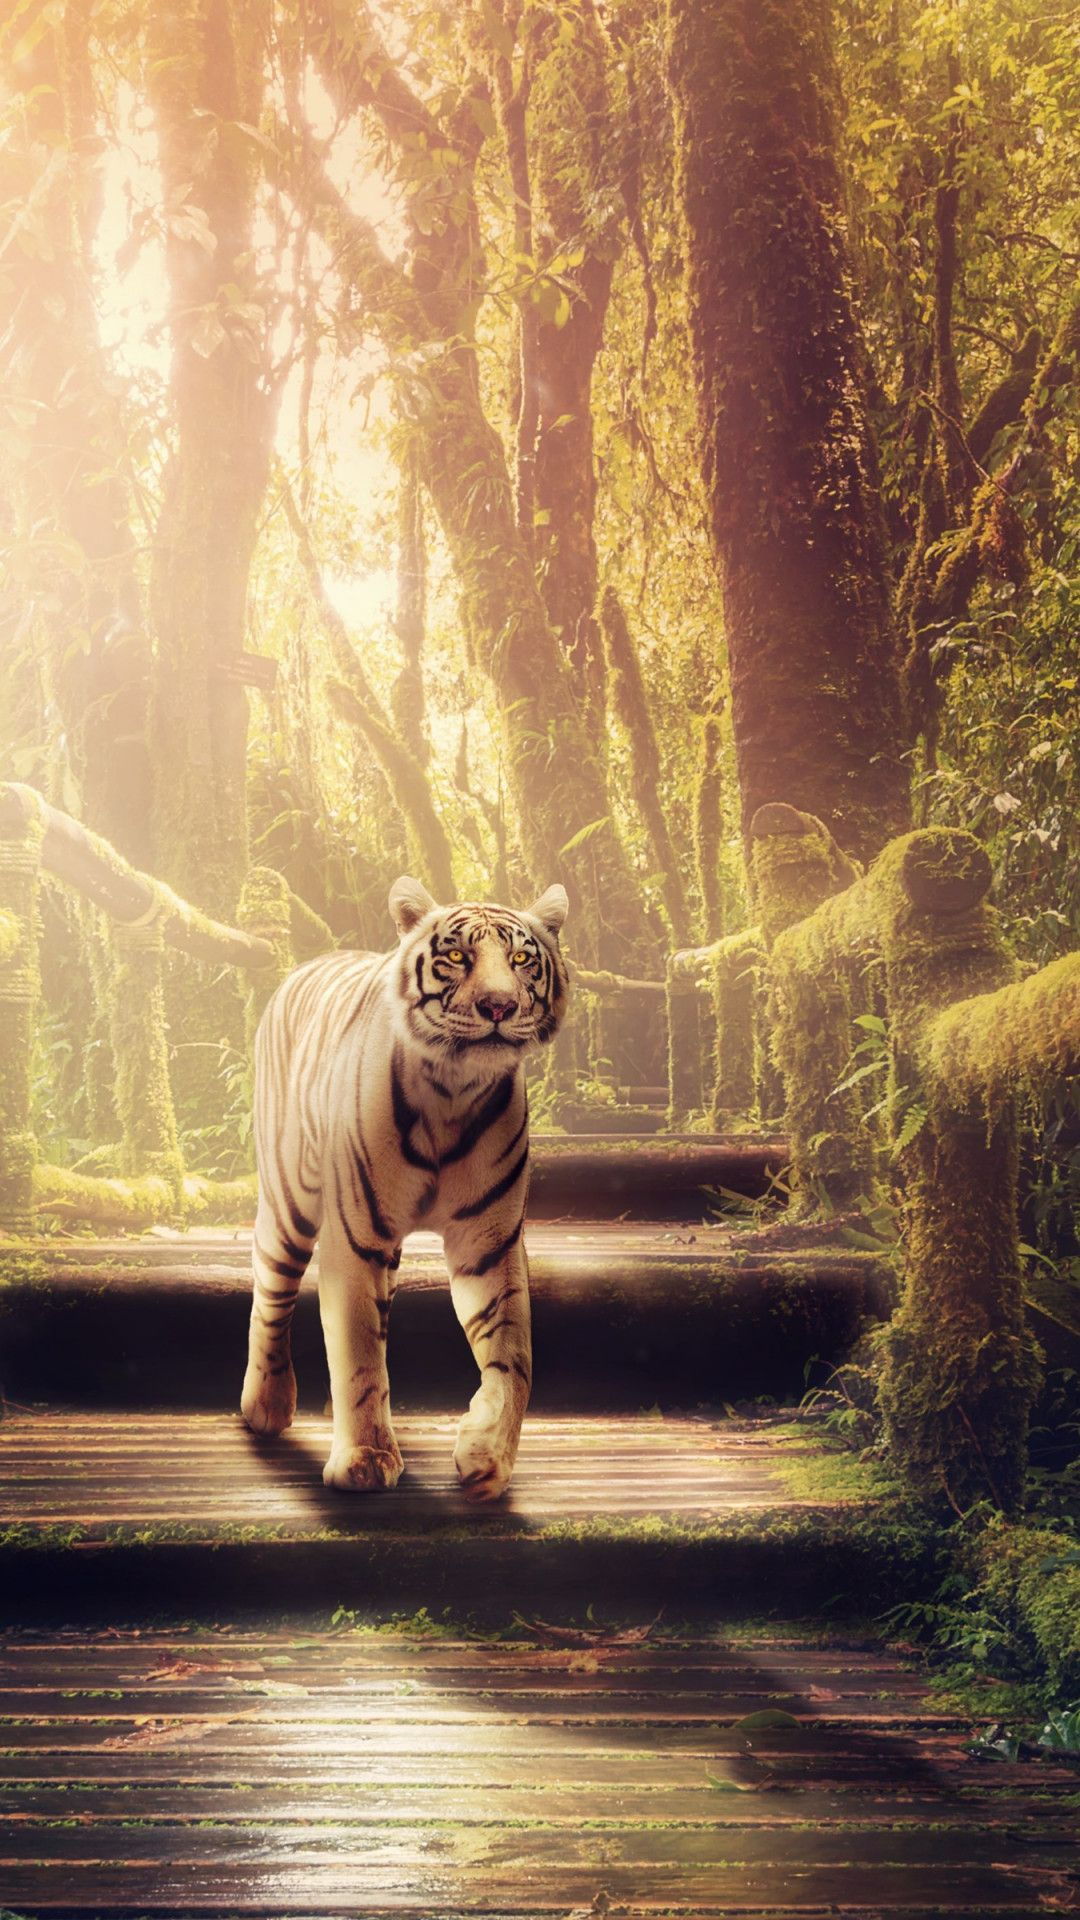 Download The The Tiger Of Jungle Wallpaper Inresolution For Use